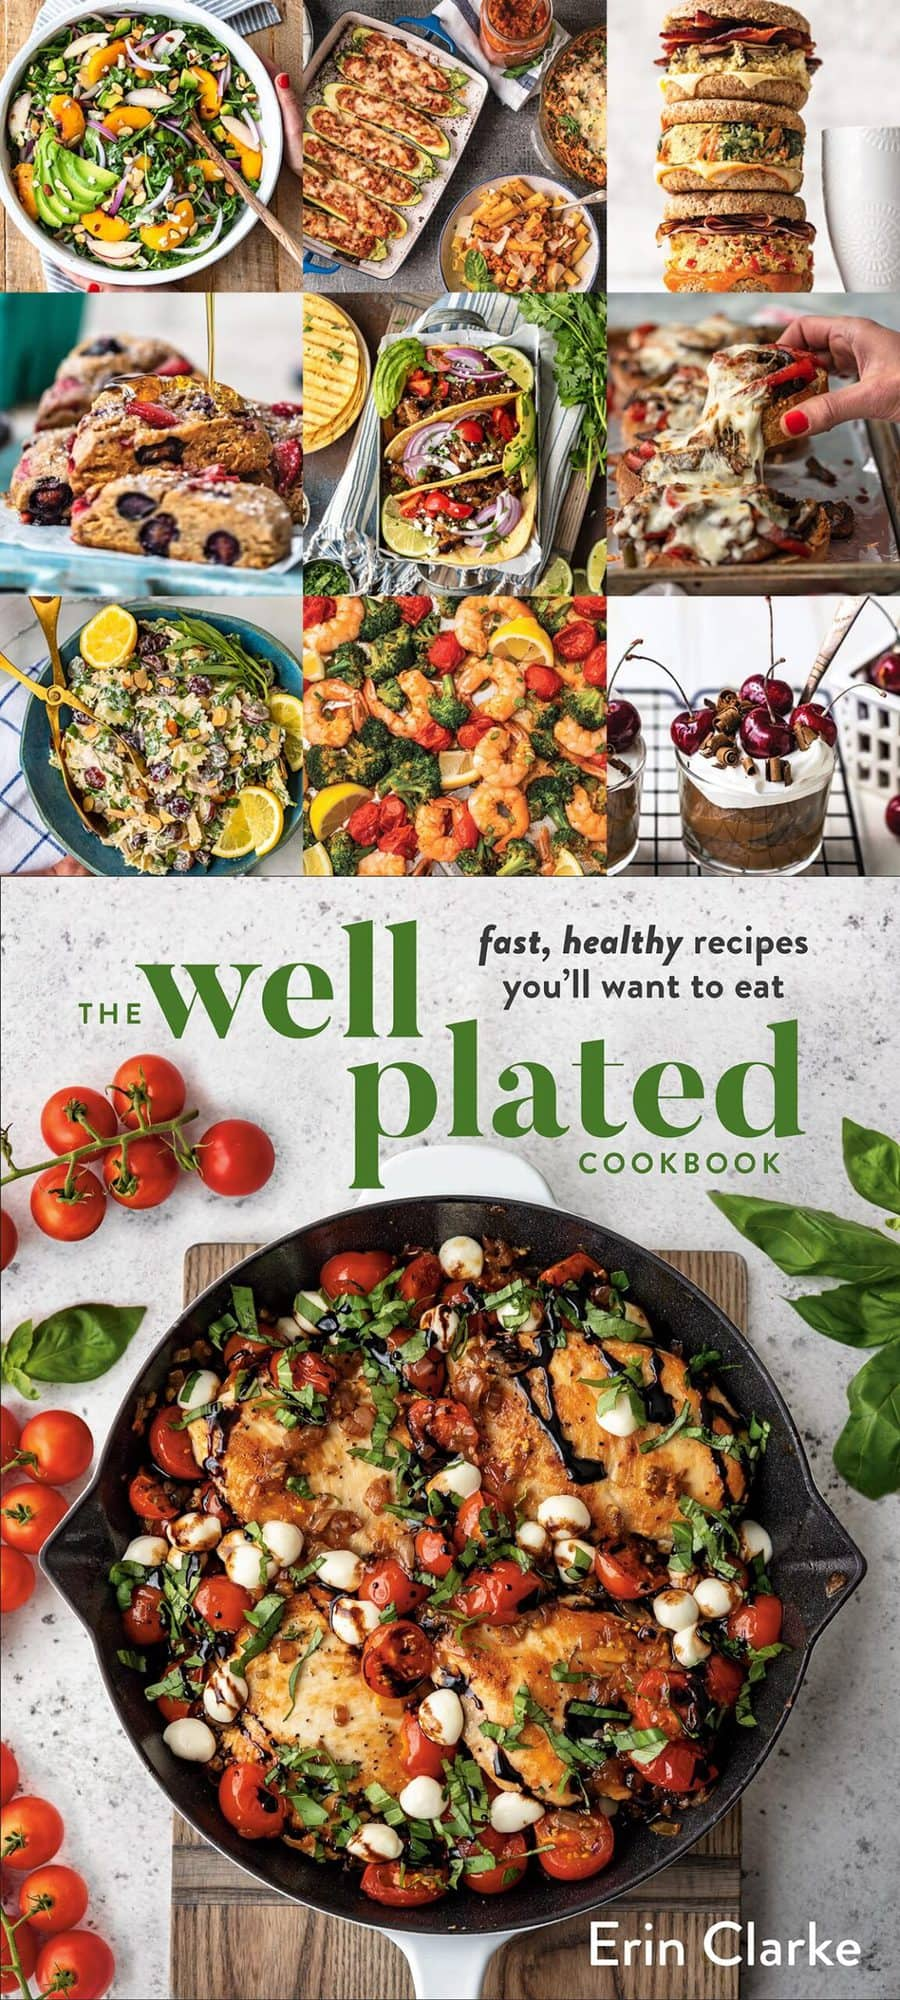 Well Plated Cookbook Photo Collage and Cookbook Cover